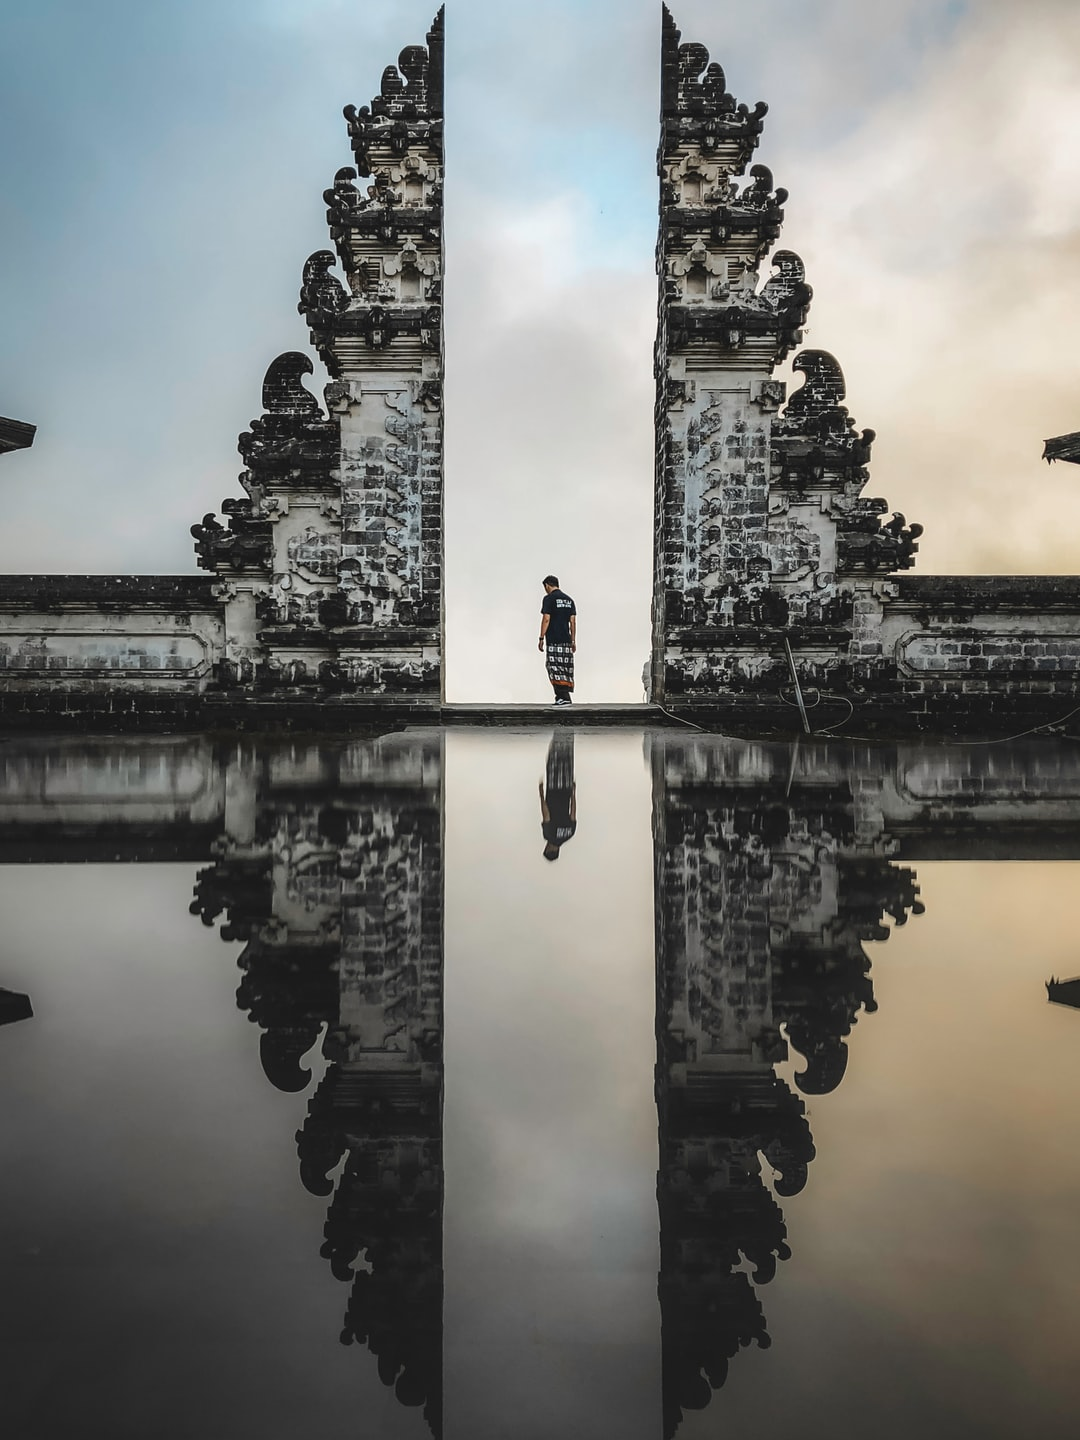 100 Beautiful Bali Pictures Download Free Images On Unsplash